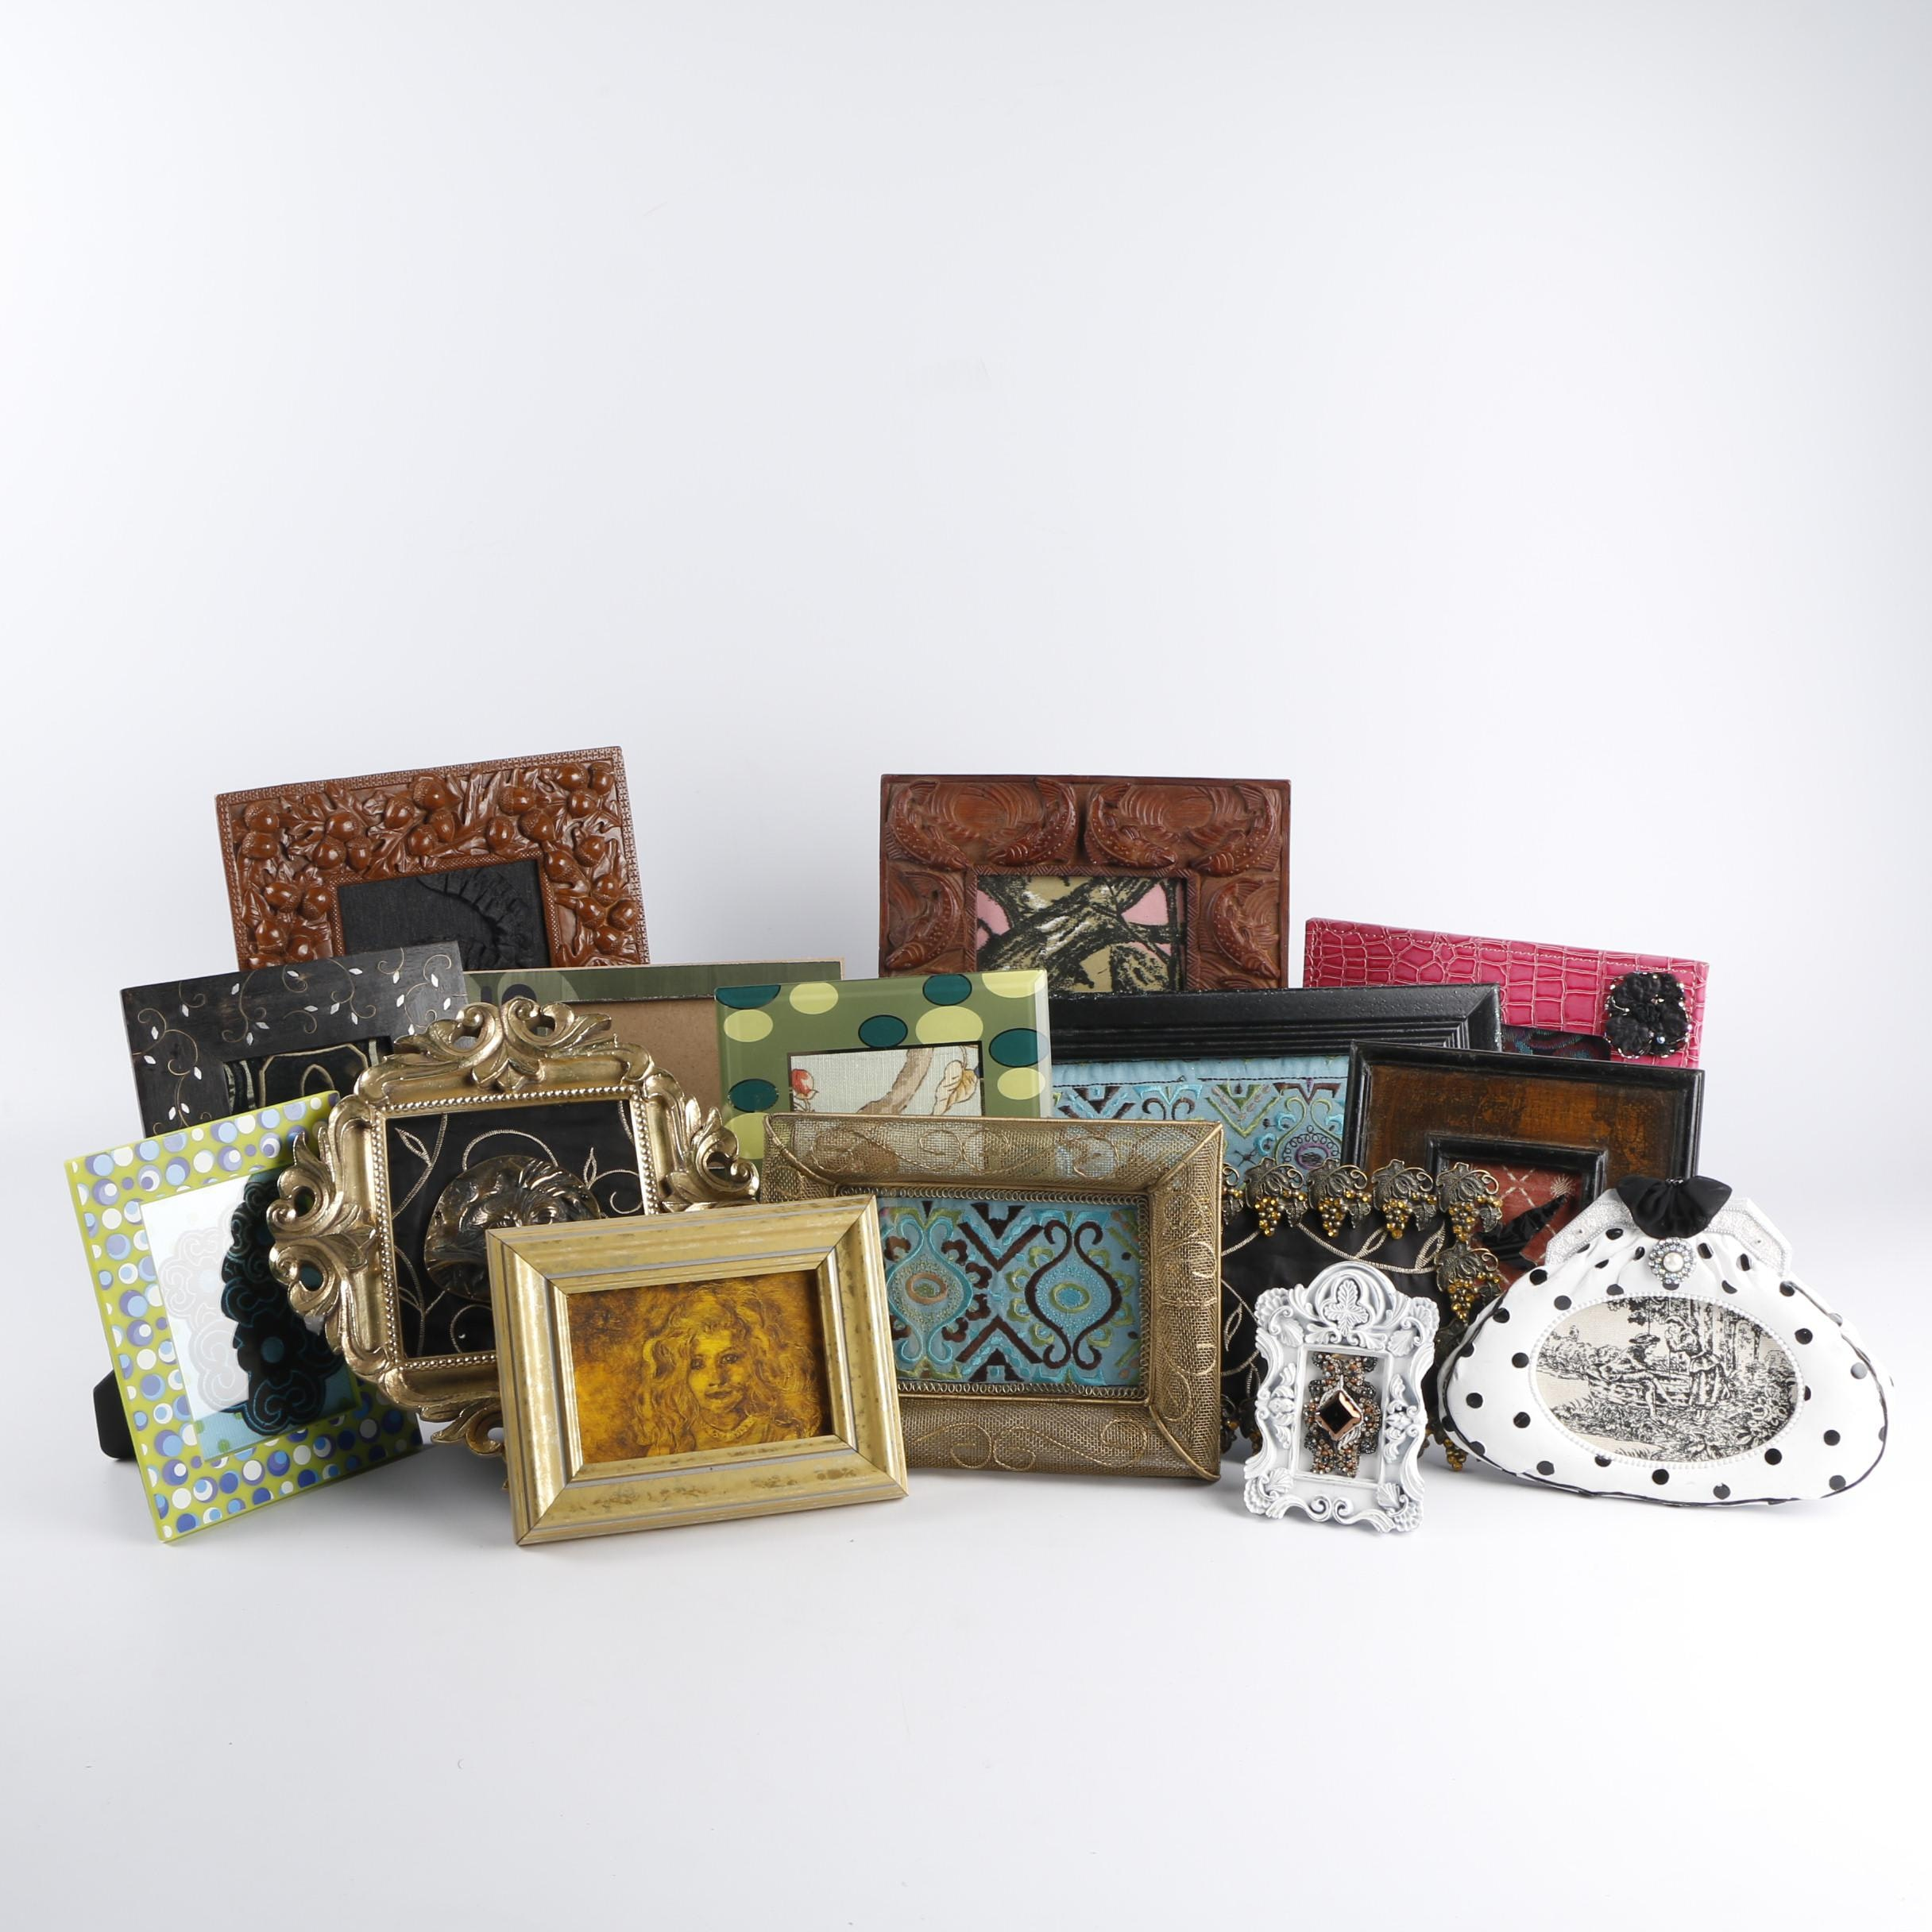 Framed Textiles and Found Objects in Eclectic Tabletop Frames